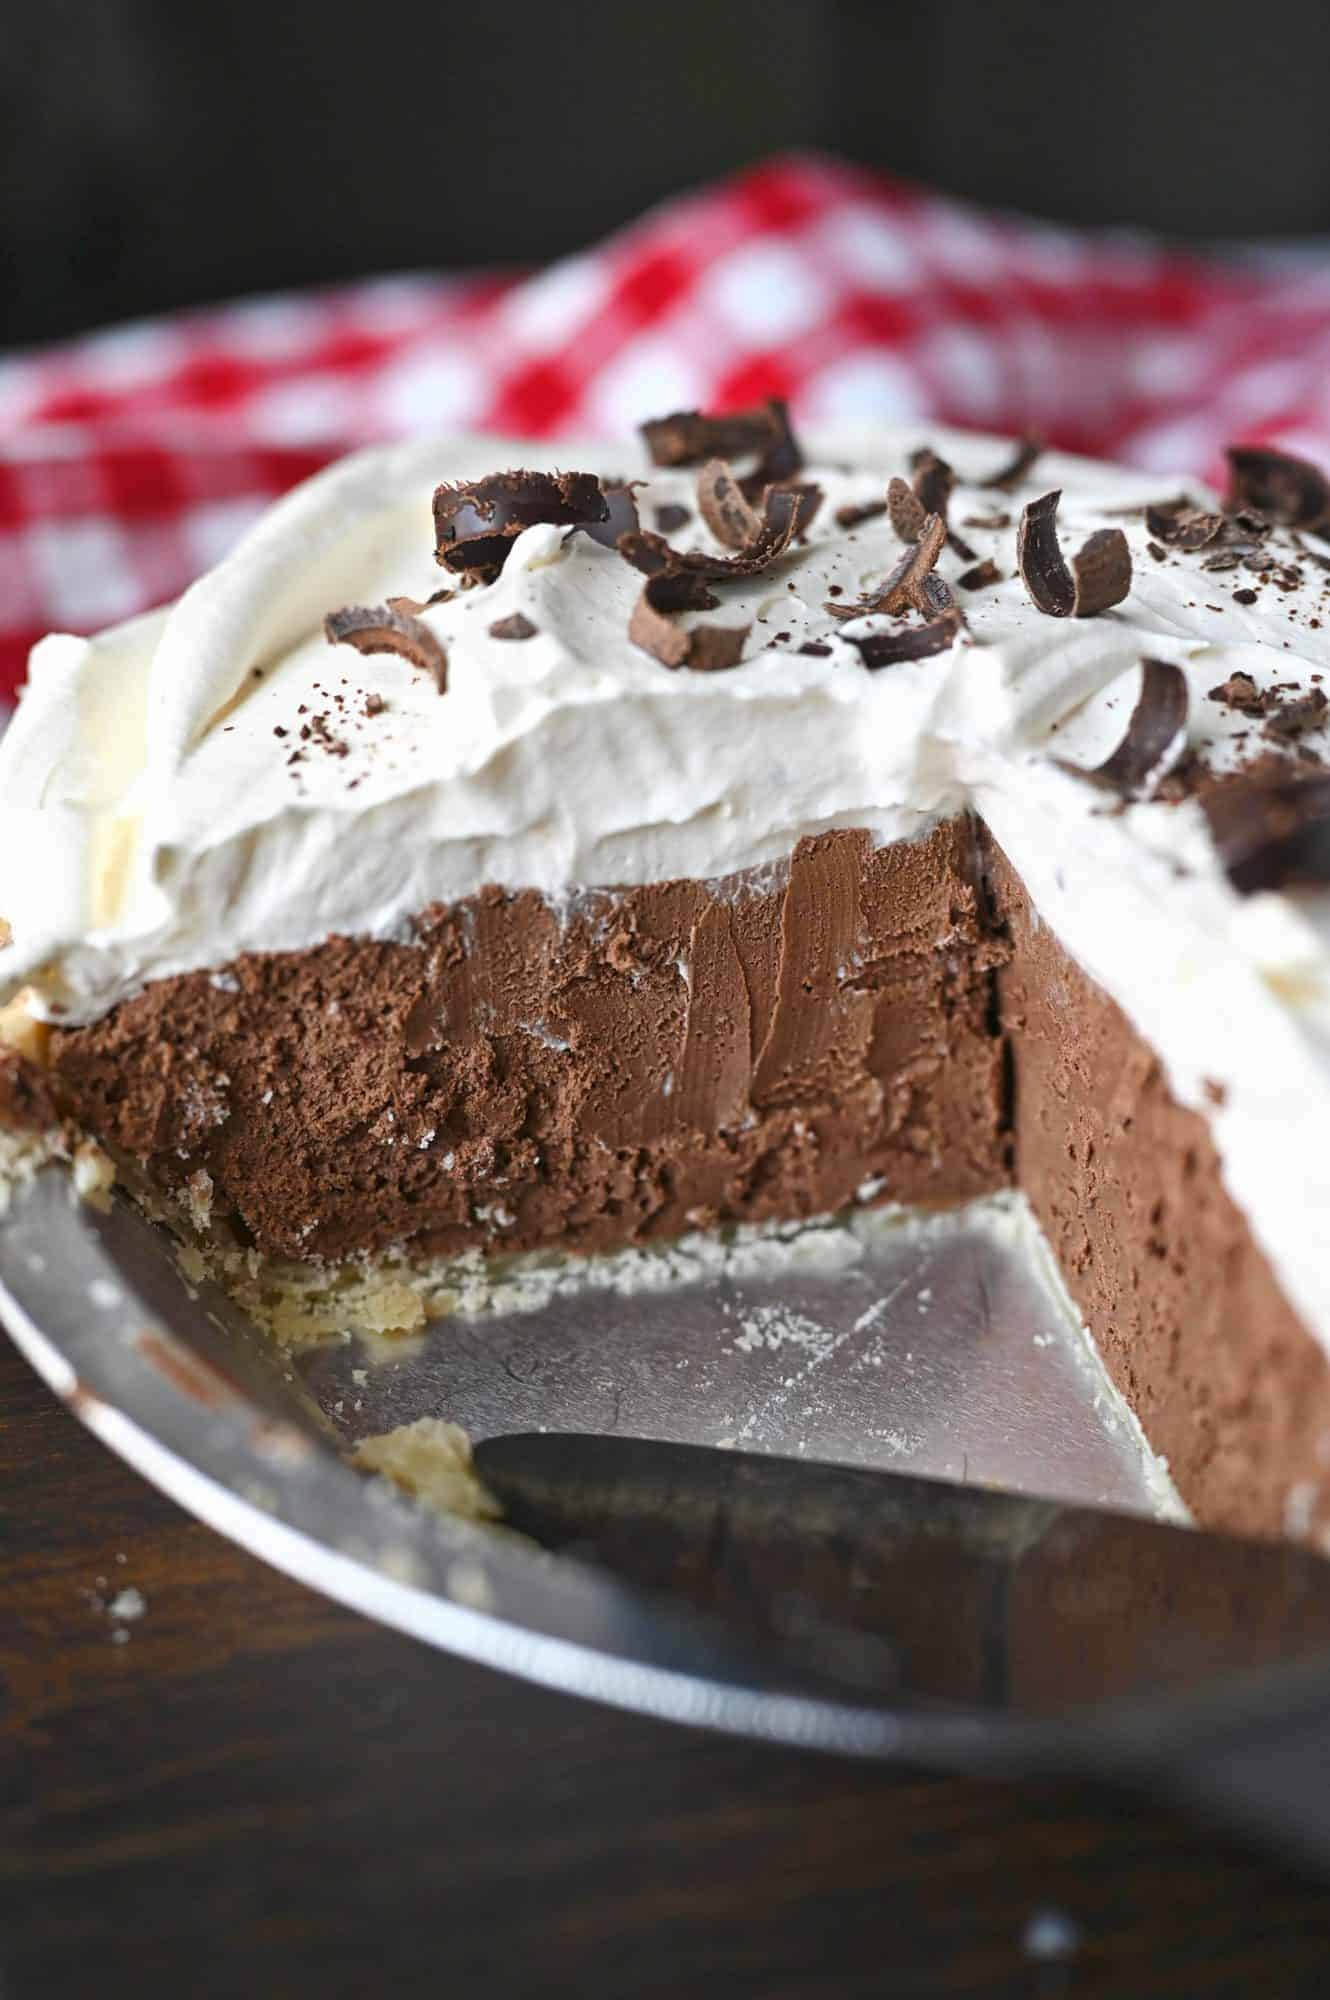 Chocolate cream pie in a pie dish with two slices removed.